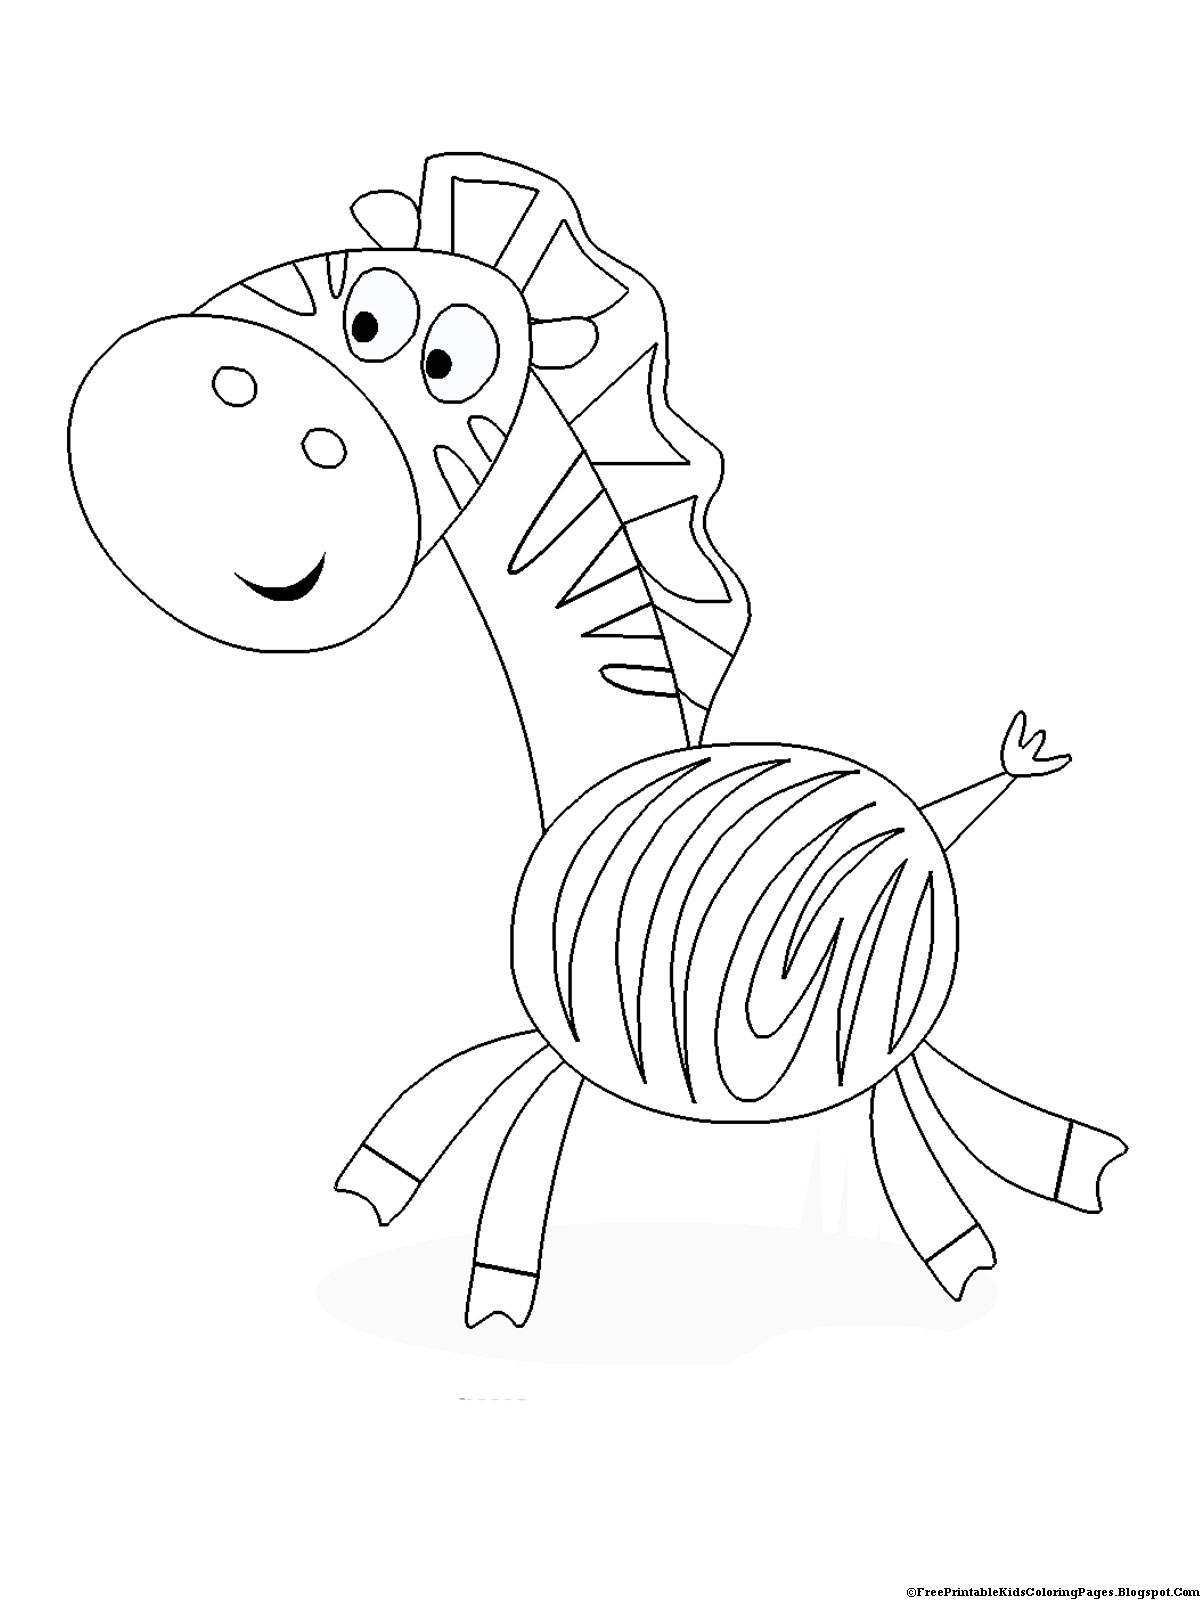 coloring pictures for kids coloring pages for girls best coloring pages for kids pictures coloring for kids 1 1